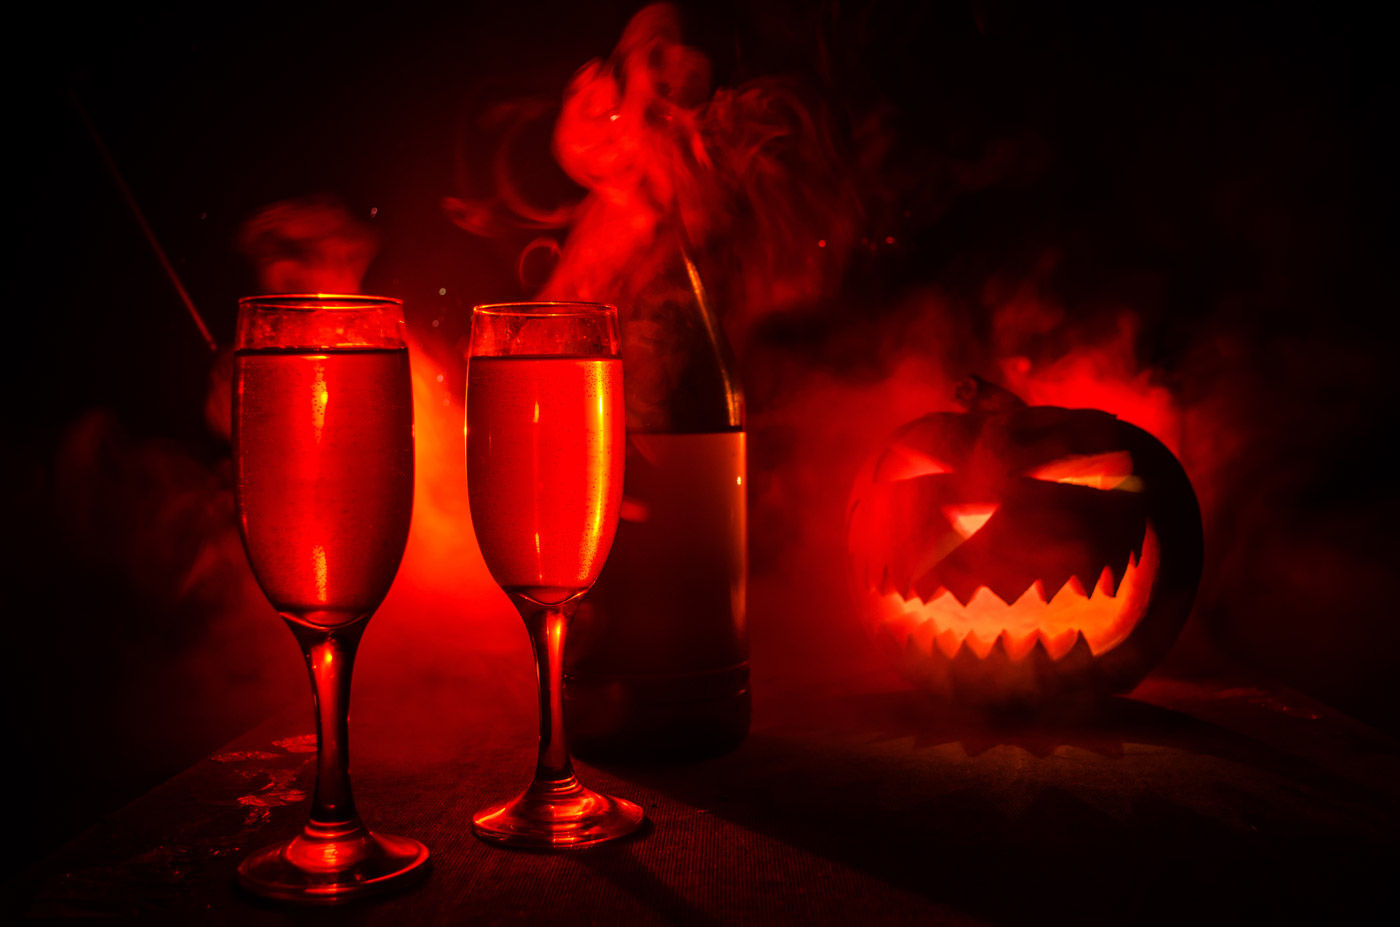 Sip some wine and carve a pumpkin at one of the events taking place near the Comfort Suites' accommodations in Kelowna this Halloween.